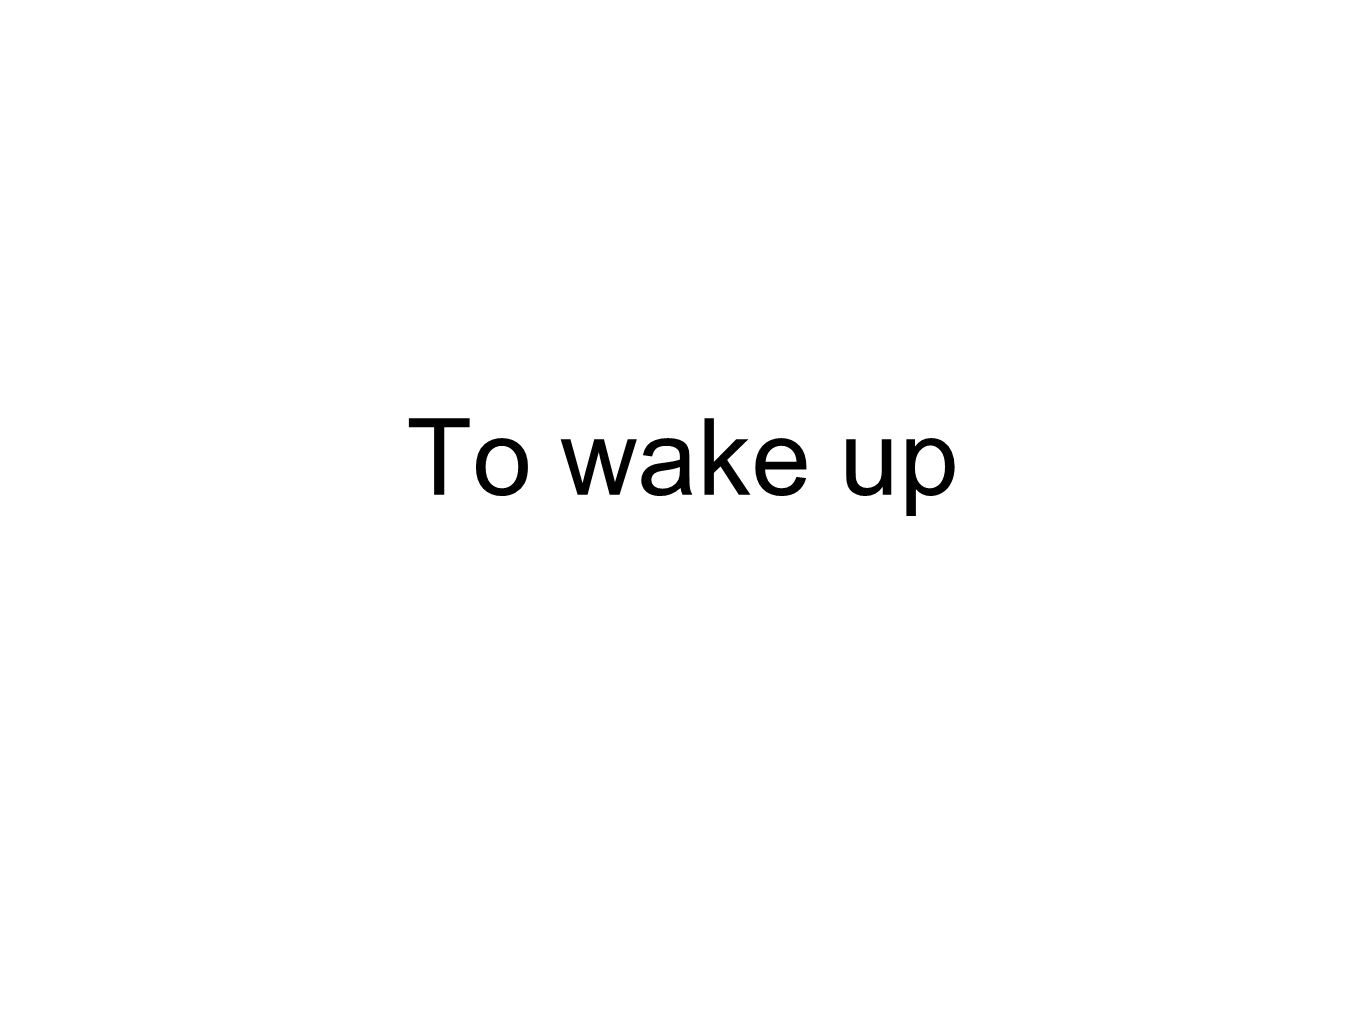 To wake up